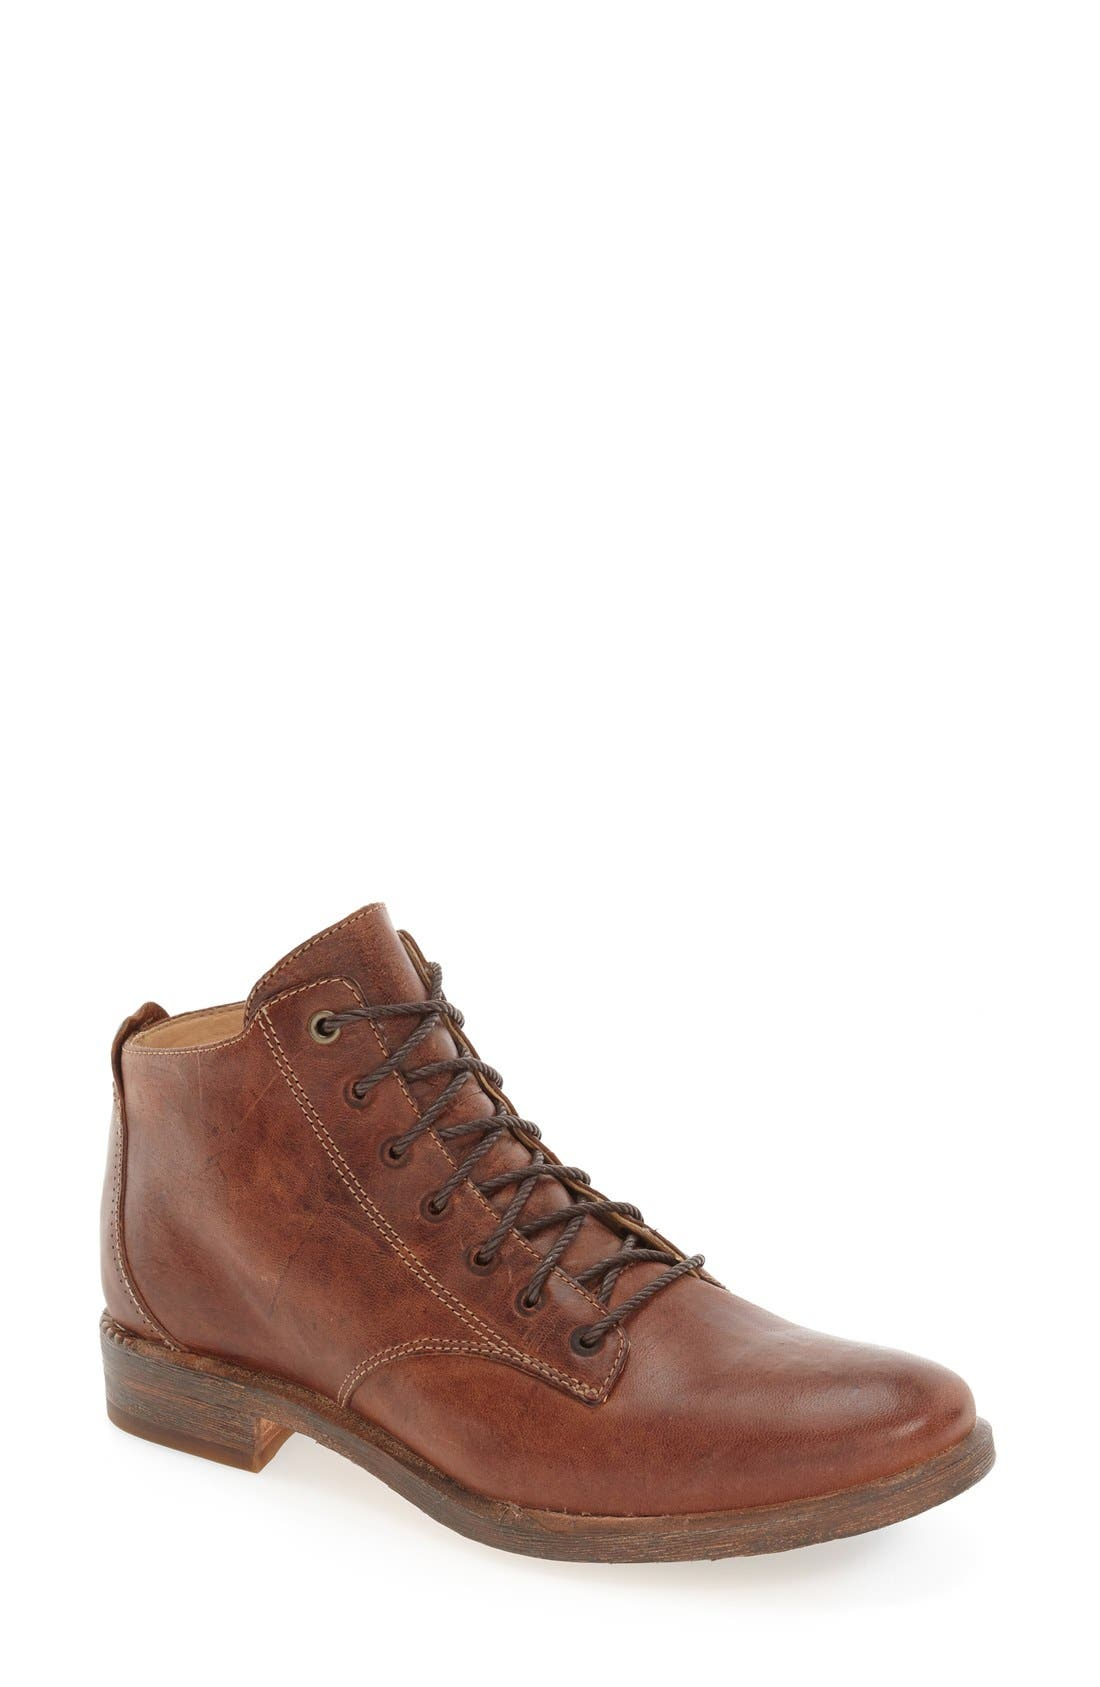 Main Image - Timberland 'Lucille' Lace-Up Bootie (Women)